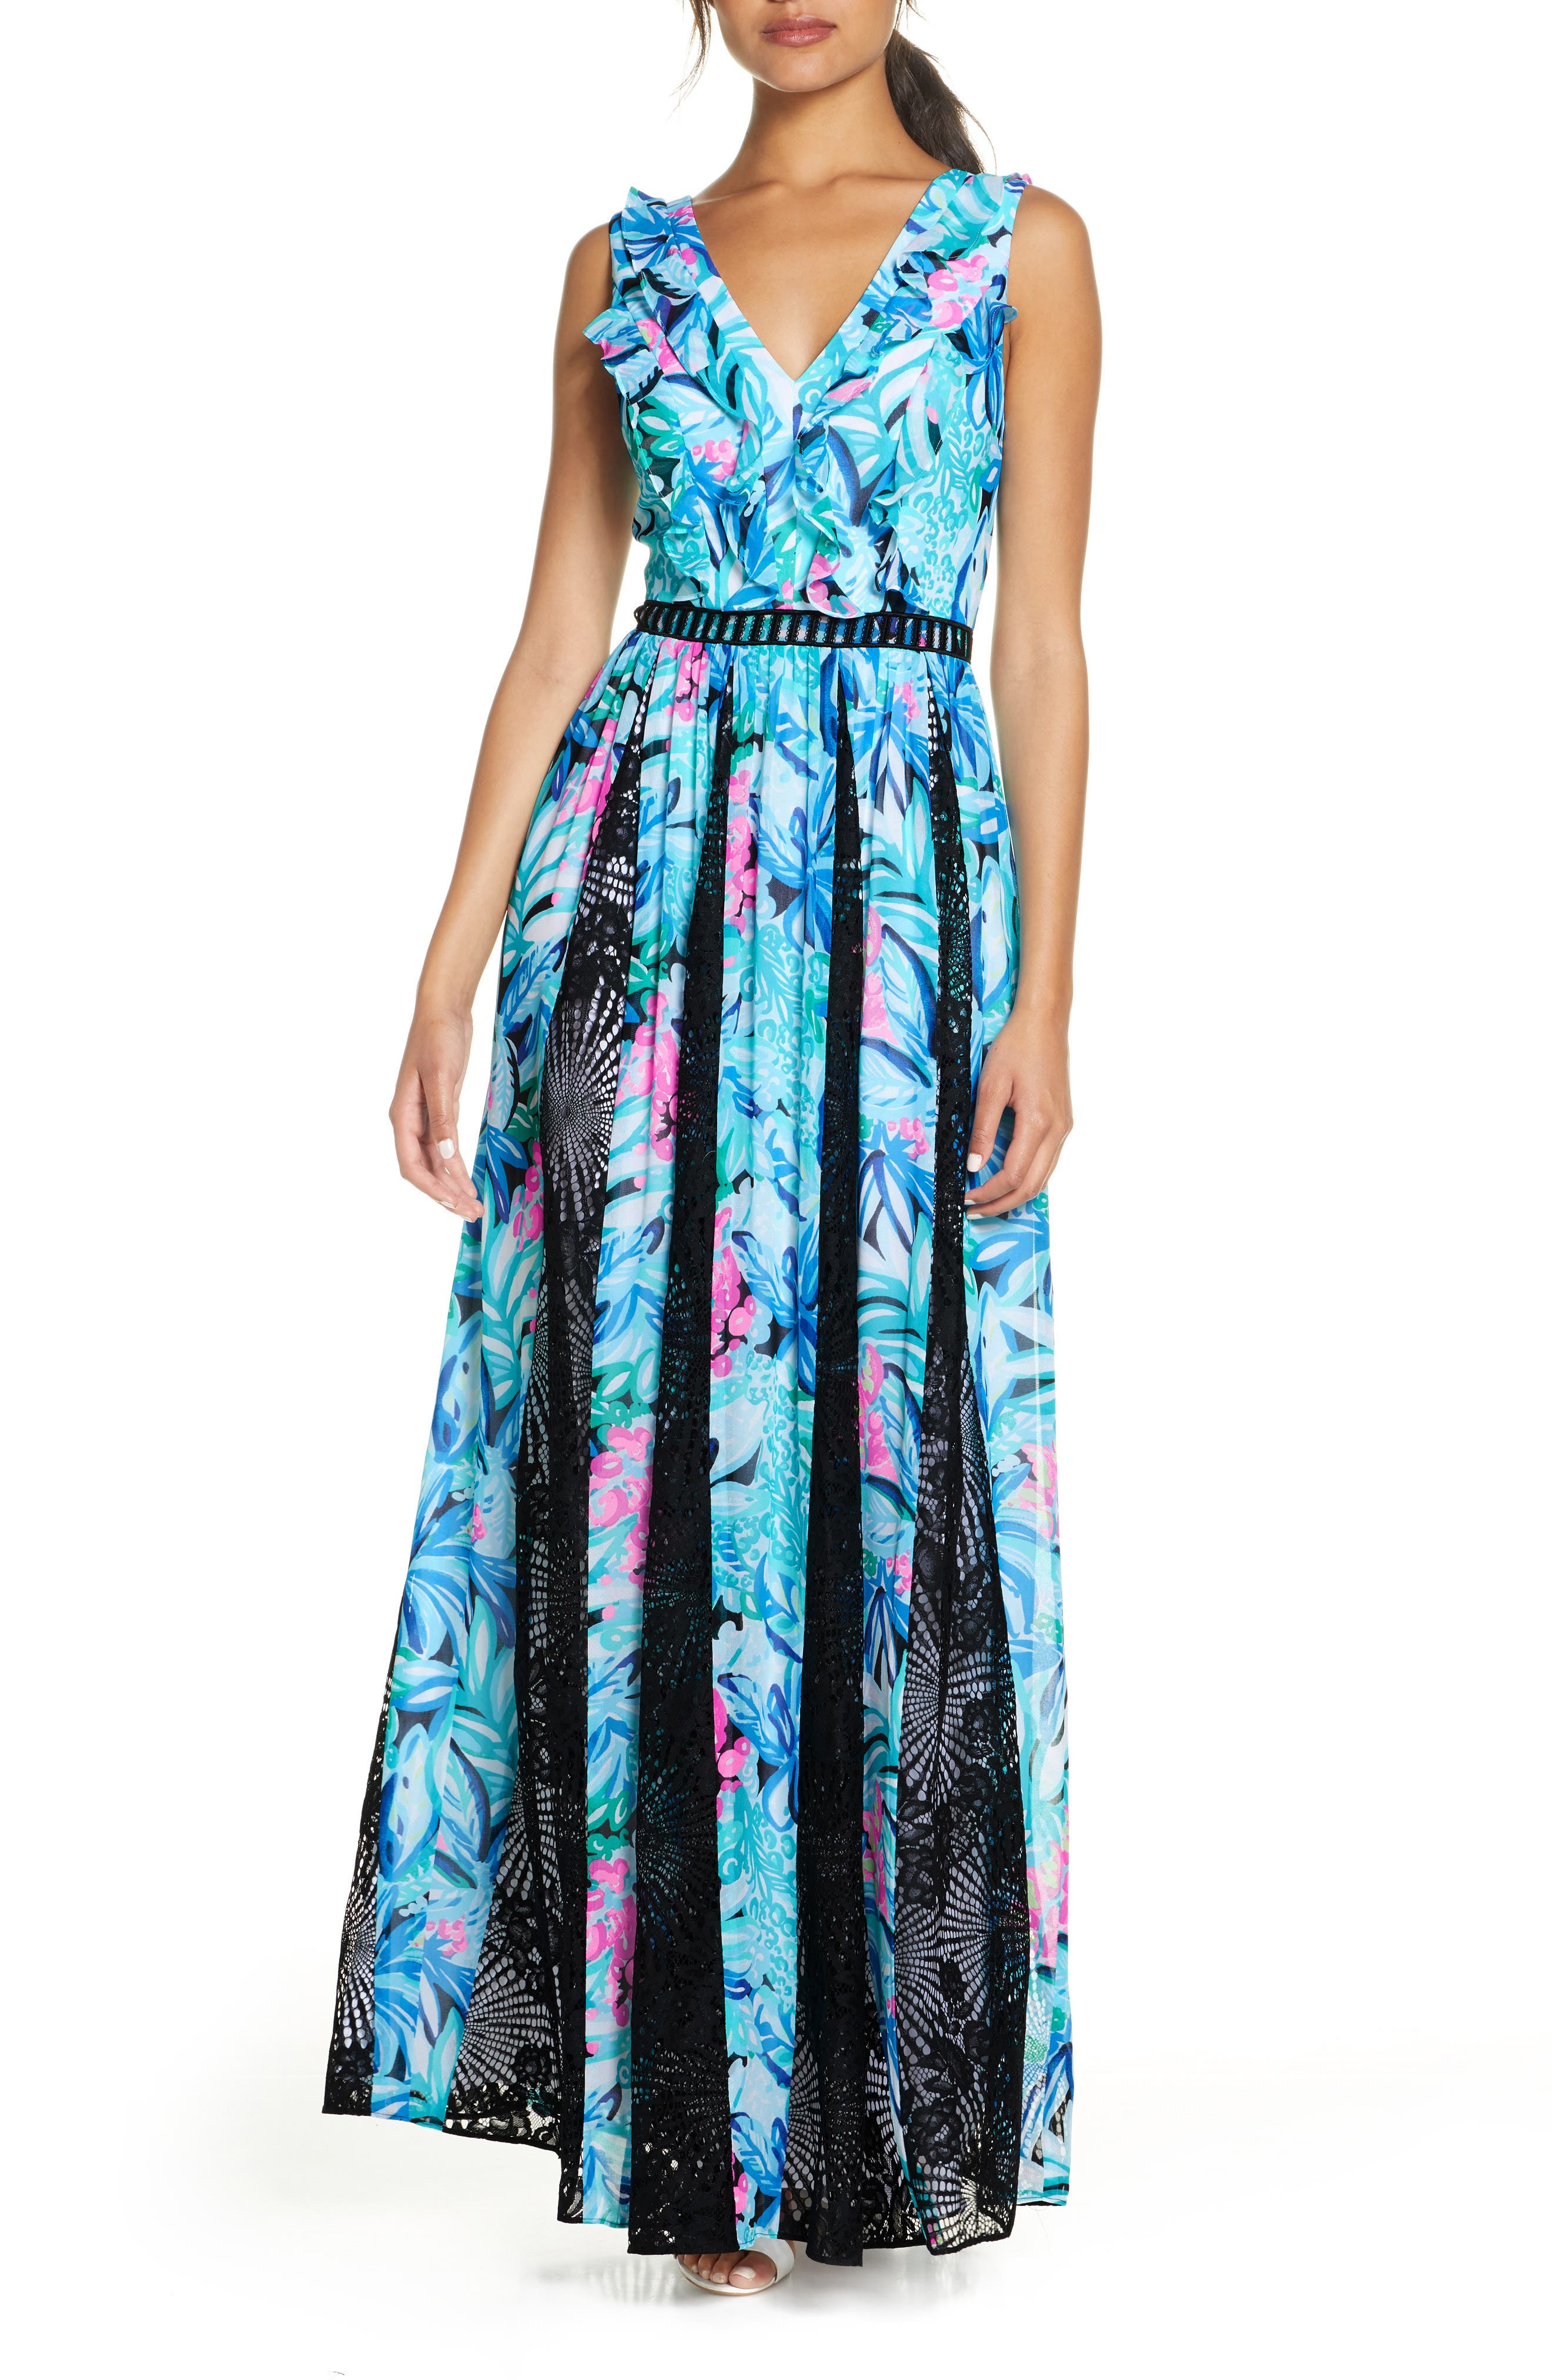 Gores of black lace add dramatic contrast and volume to a party-ready crepe maxi with a lavish watercolor print. Ruffles cascading from the V-neckline play up the romance. Style Name: Lilly Pulitzer Janette Fit & Flare Maxi Dress. Style Number: 5945045. Available in stores.